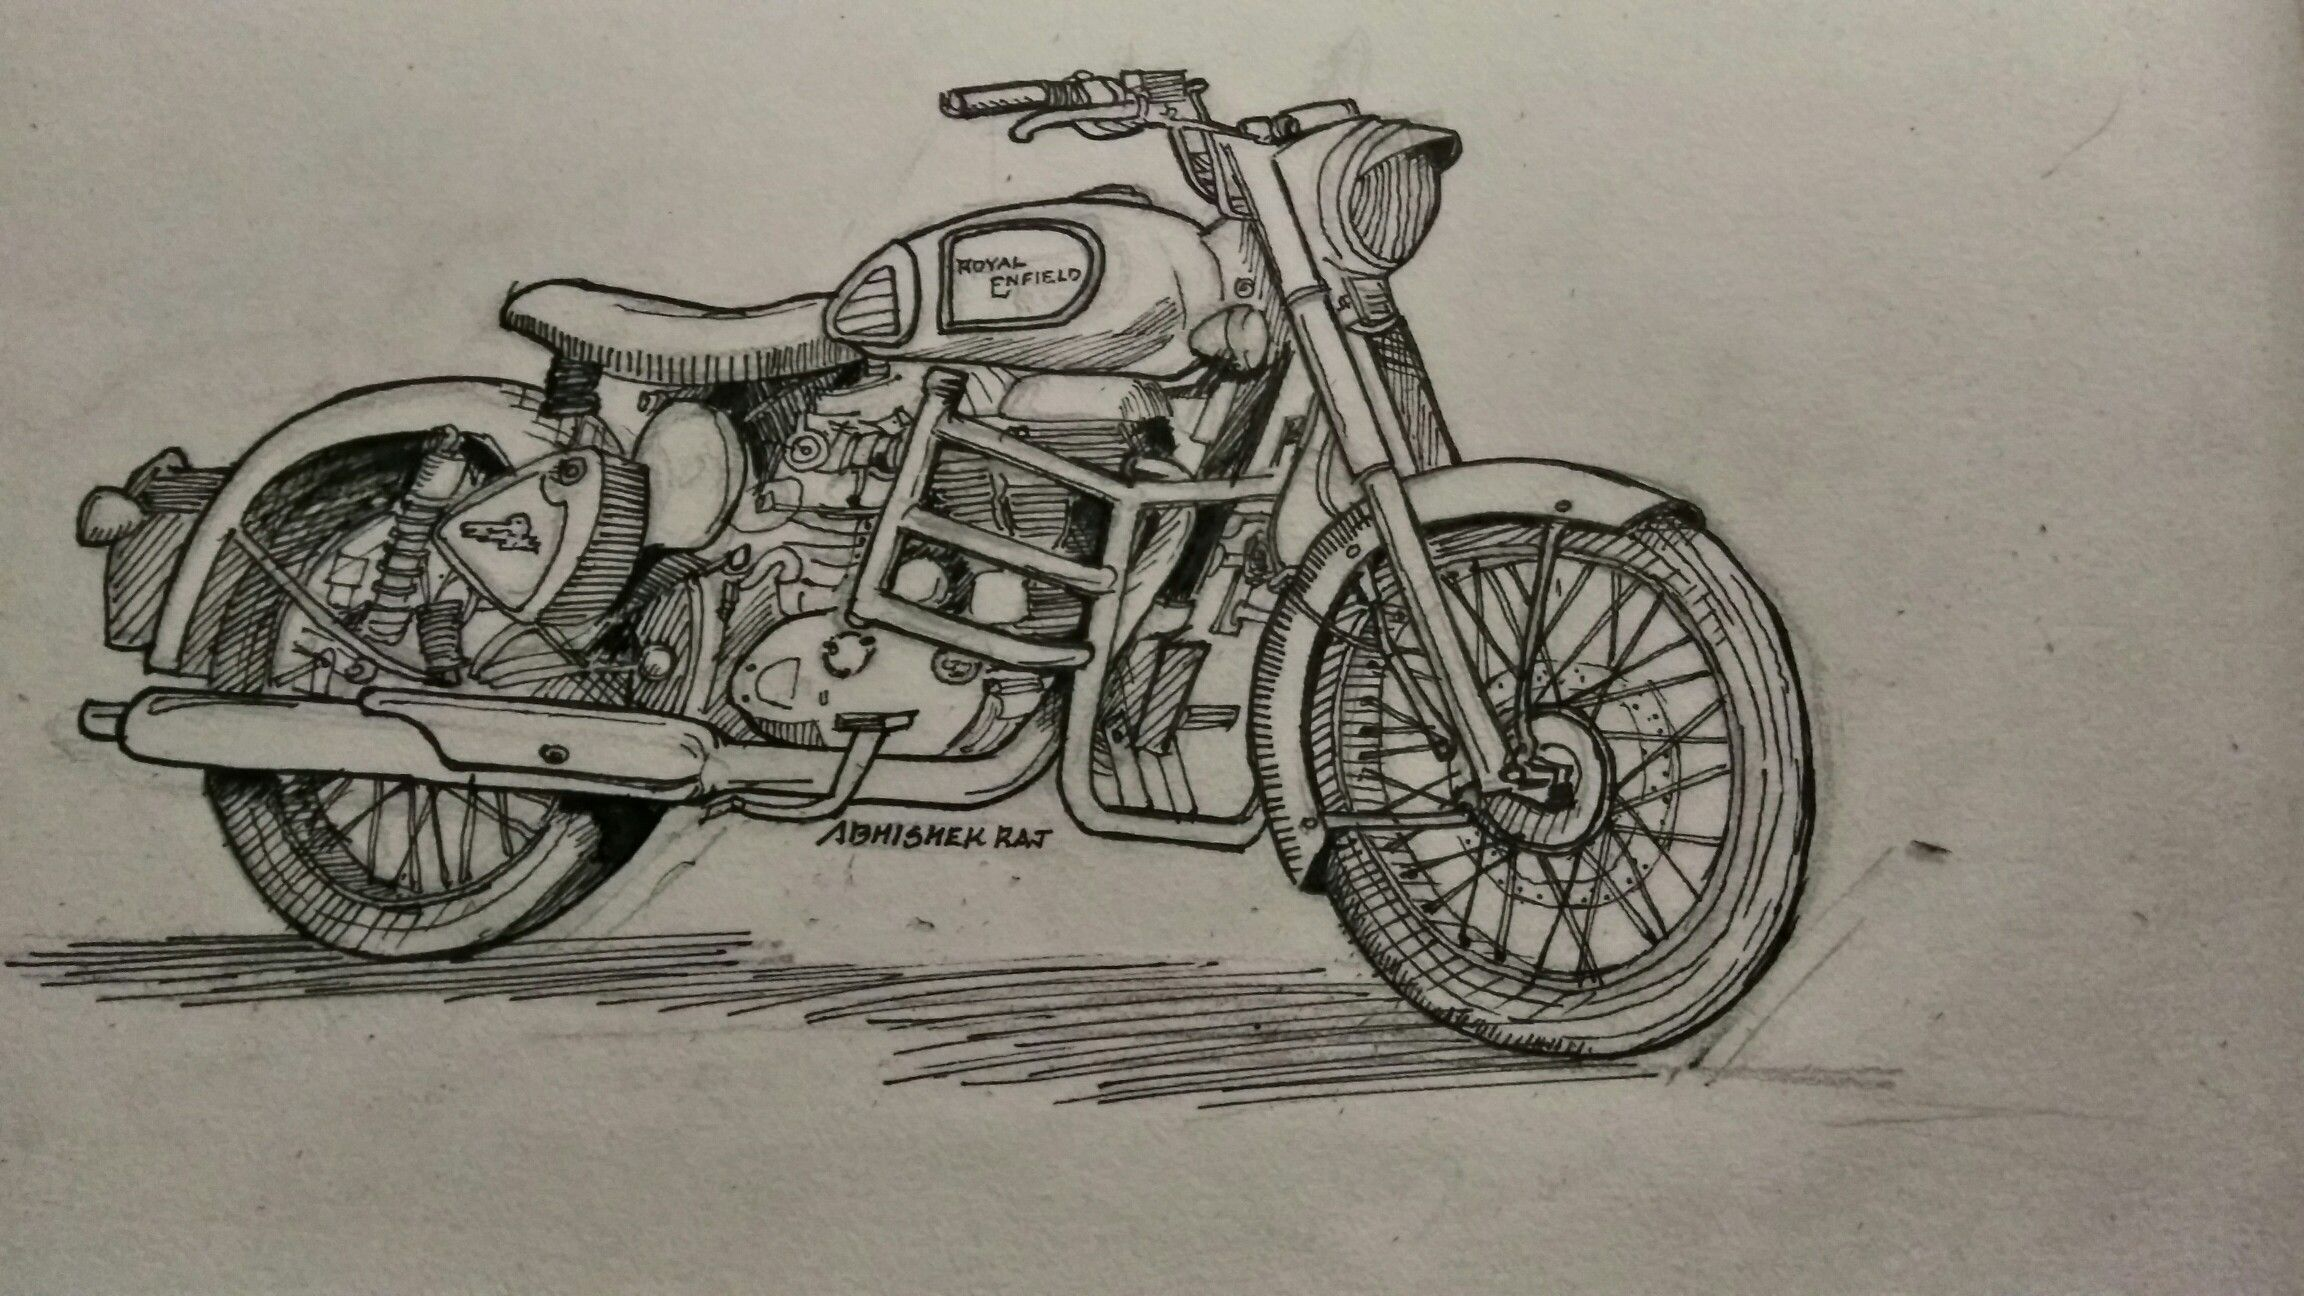 Royal enfeild classic 350 sketch